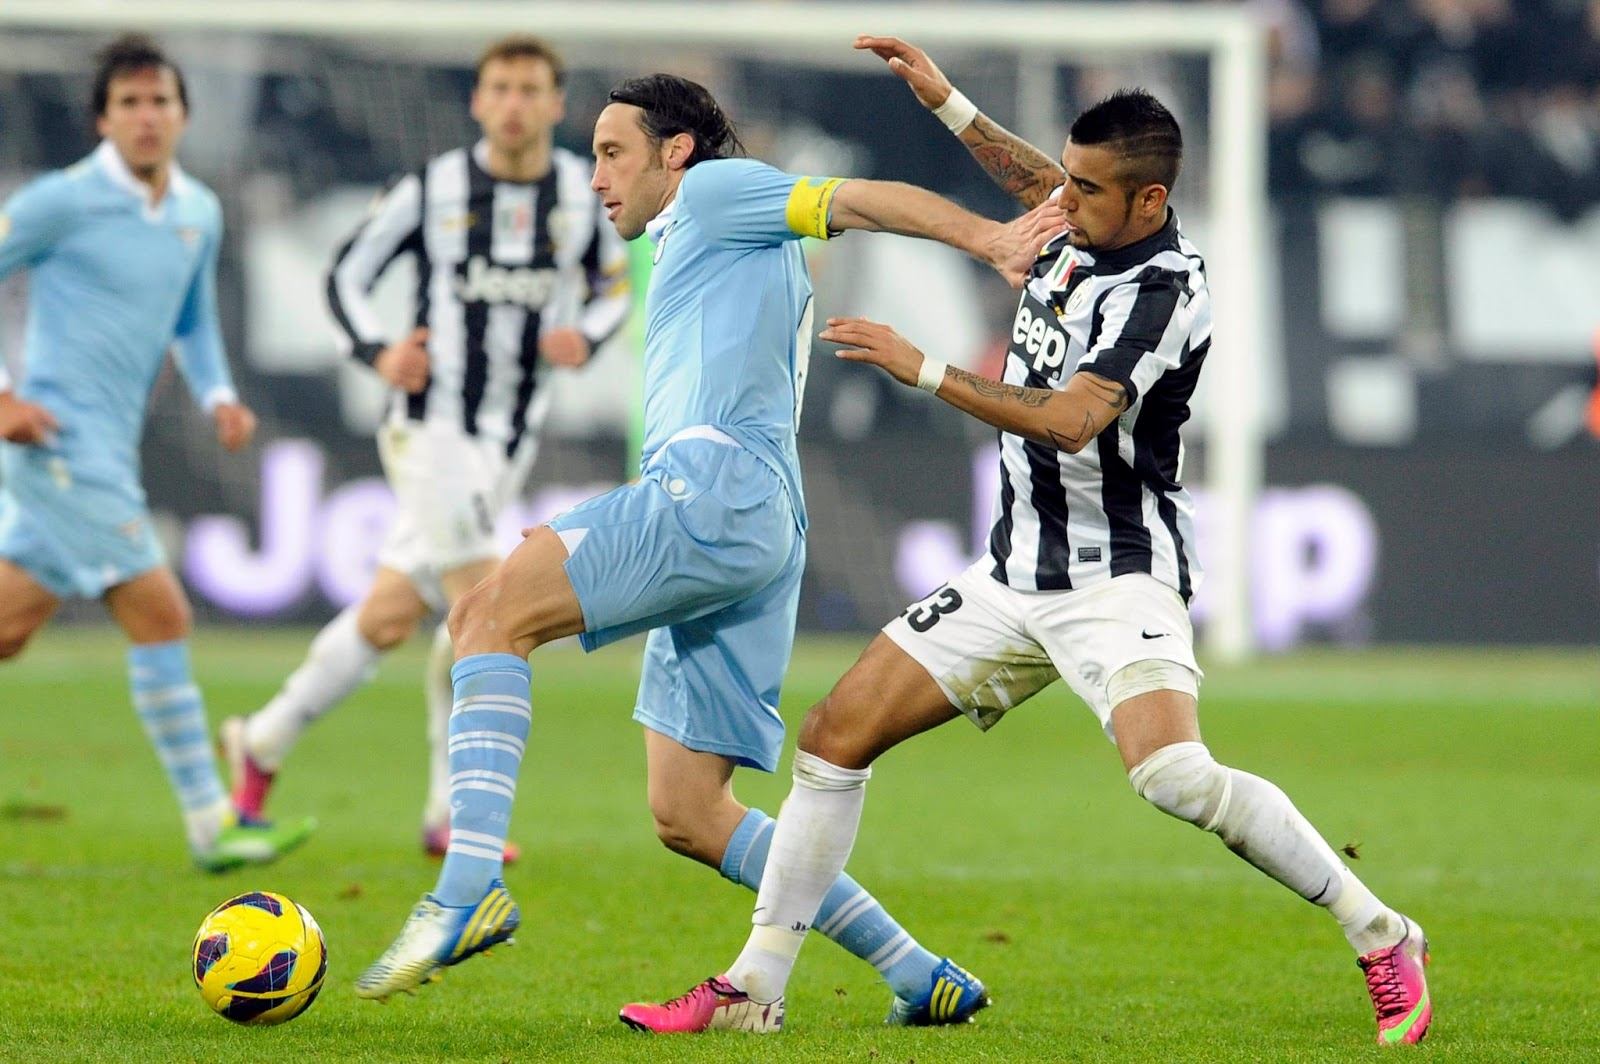 Italy Super Cup Juventus Vs Lazio 08 August The New Ball